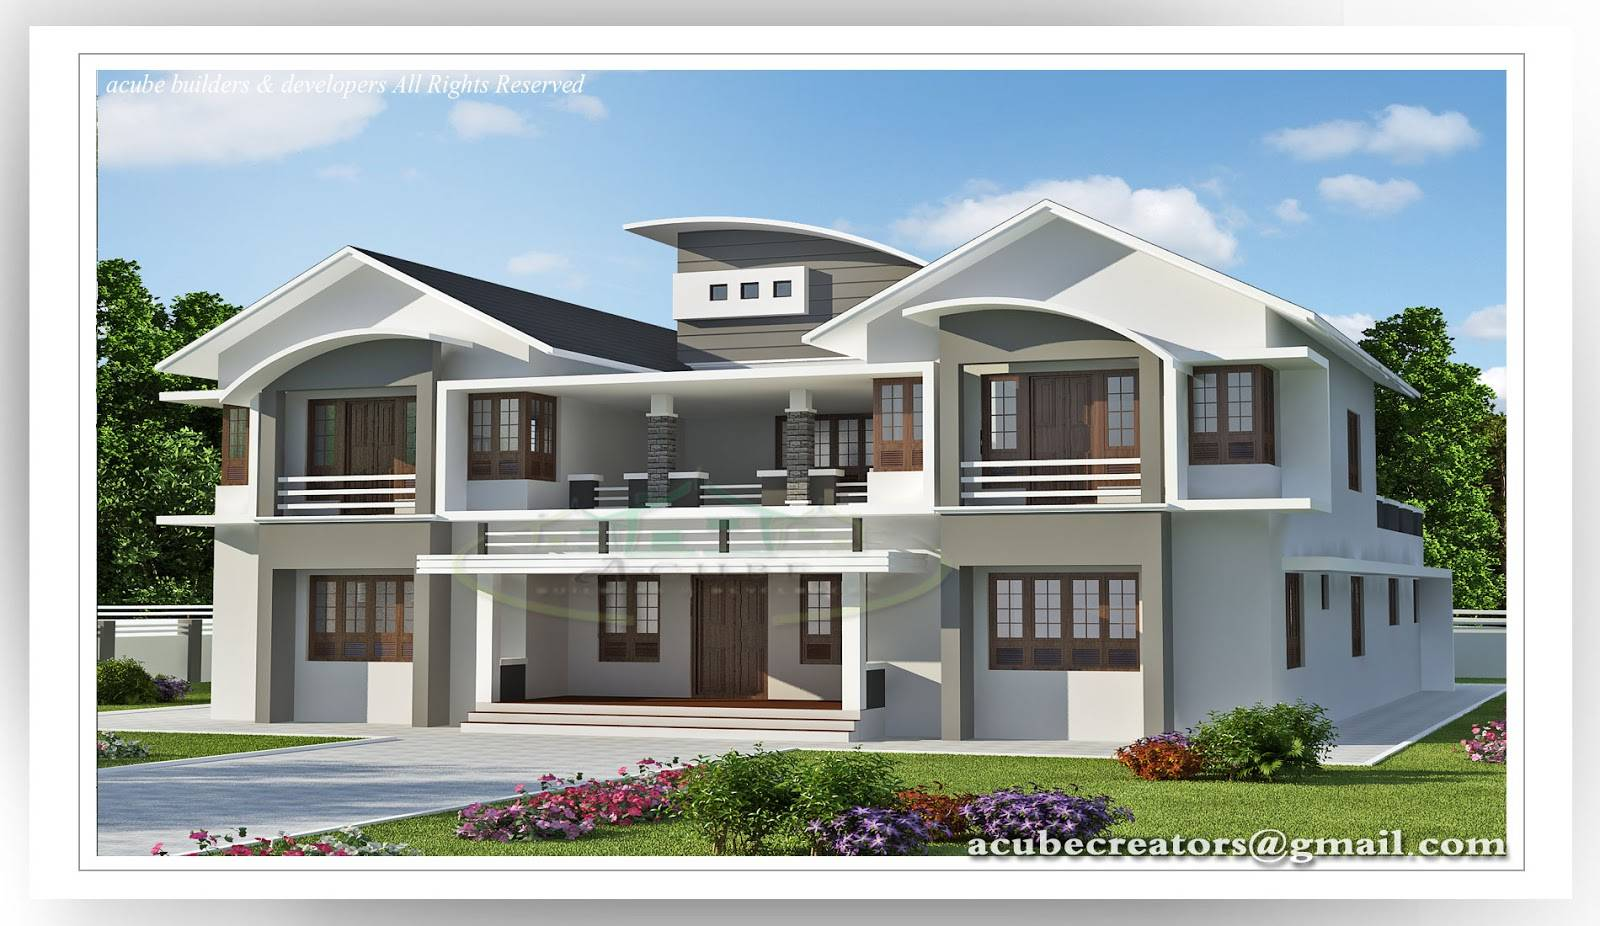 14 Fantastic 6 Bedroom 4 Bathroom House That Make You Swoon House Plans